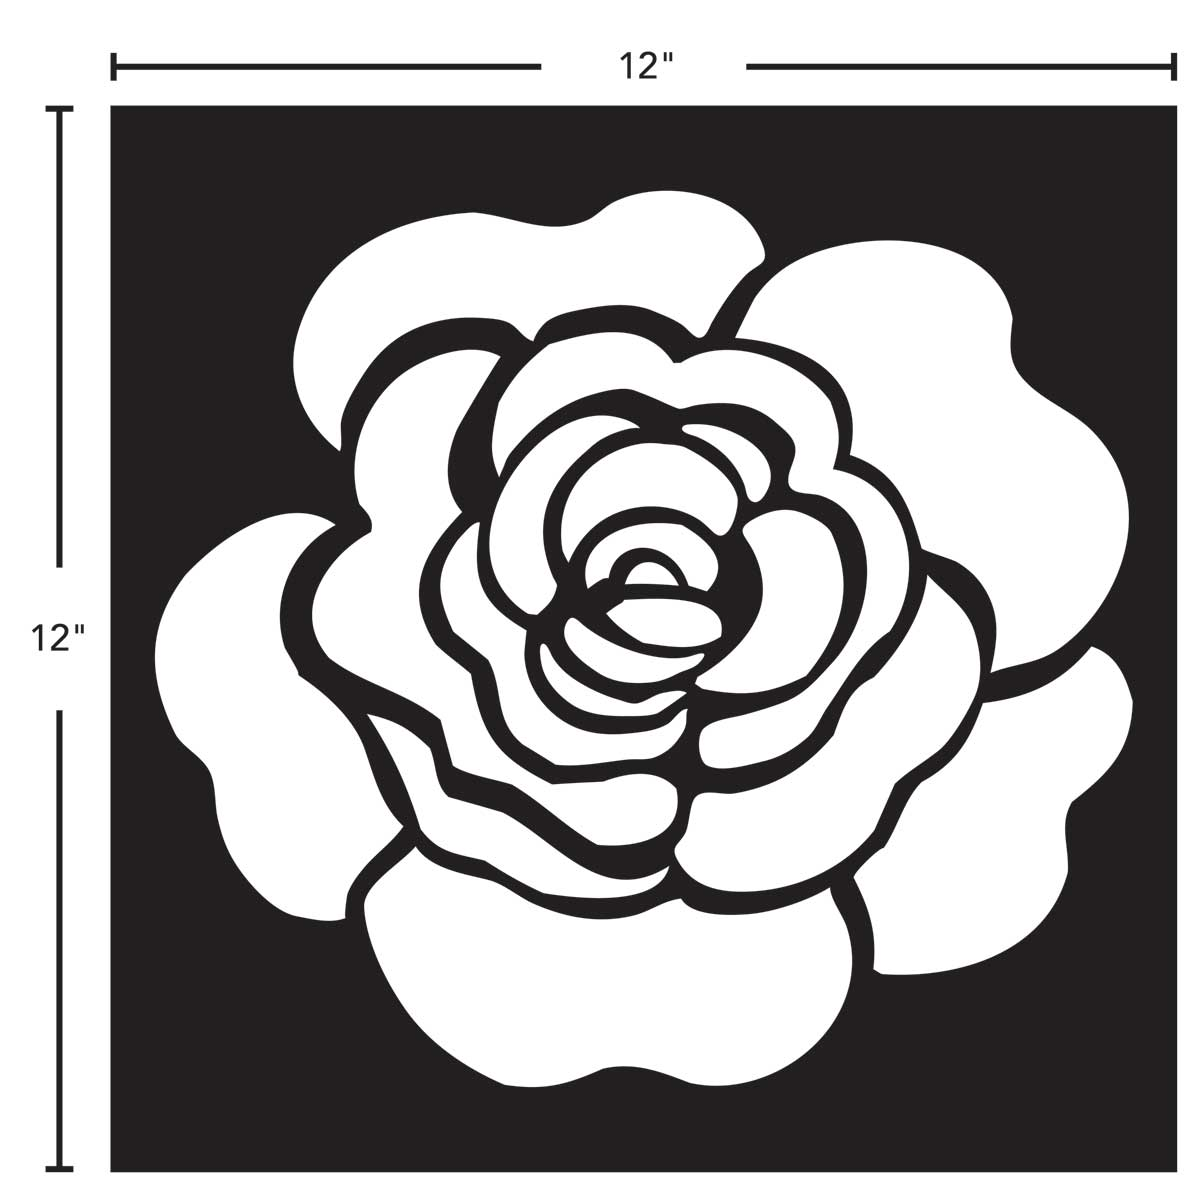 FolkArt ® Painting Stencils - Adhesive Laser - Rose - 63276